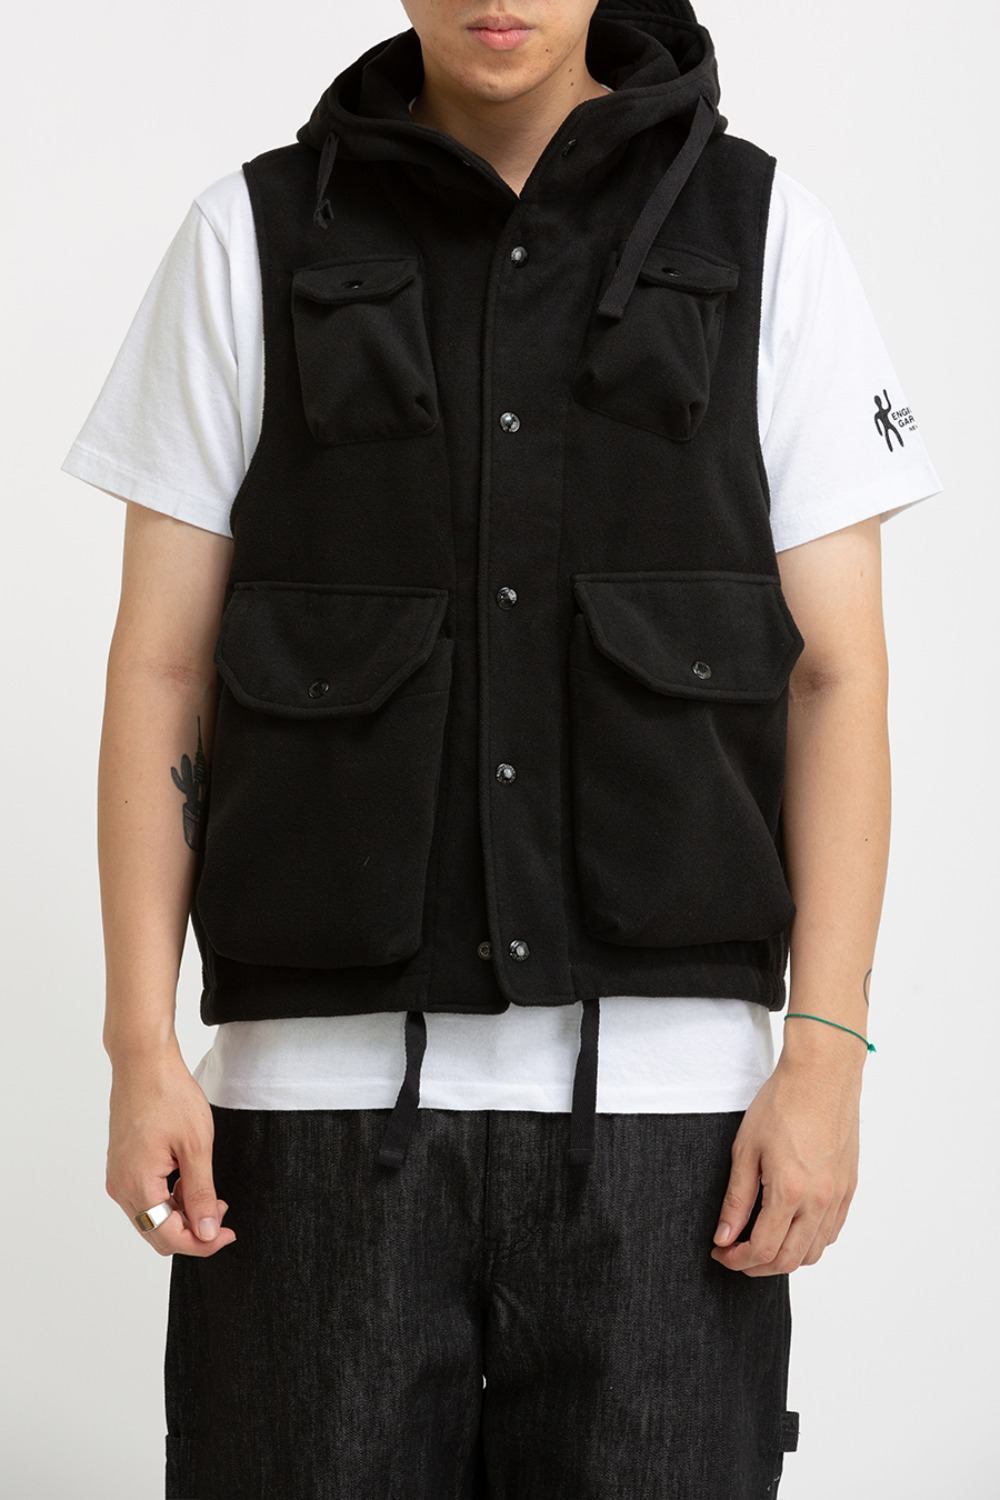 (RESTOCK) FIELD VEST BLACK POLYESTER FAKE MELTON